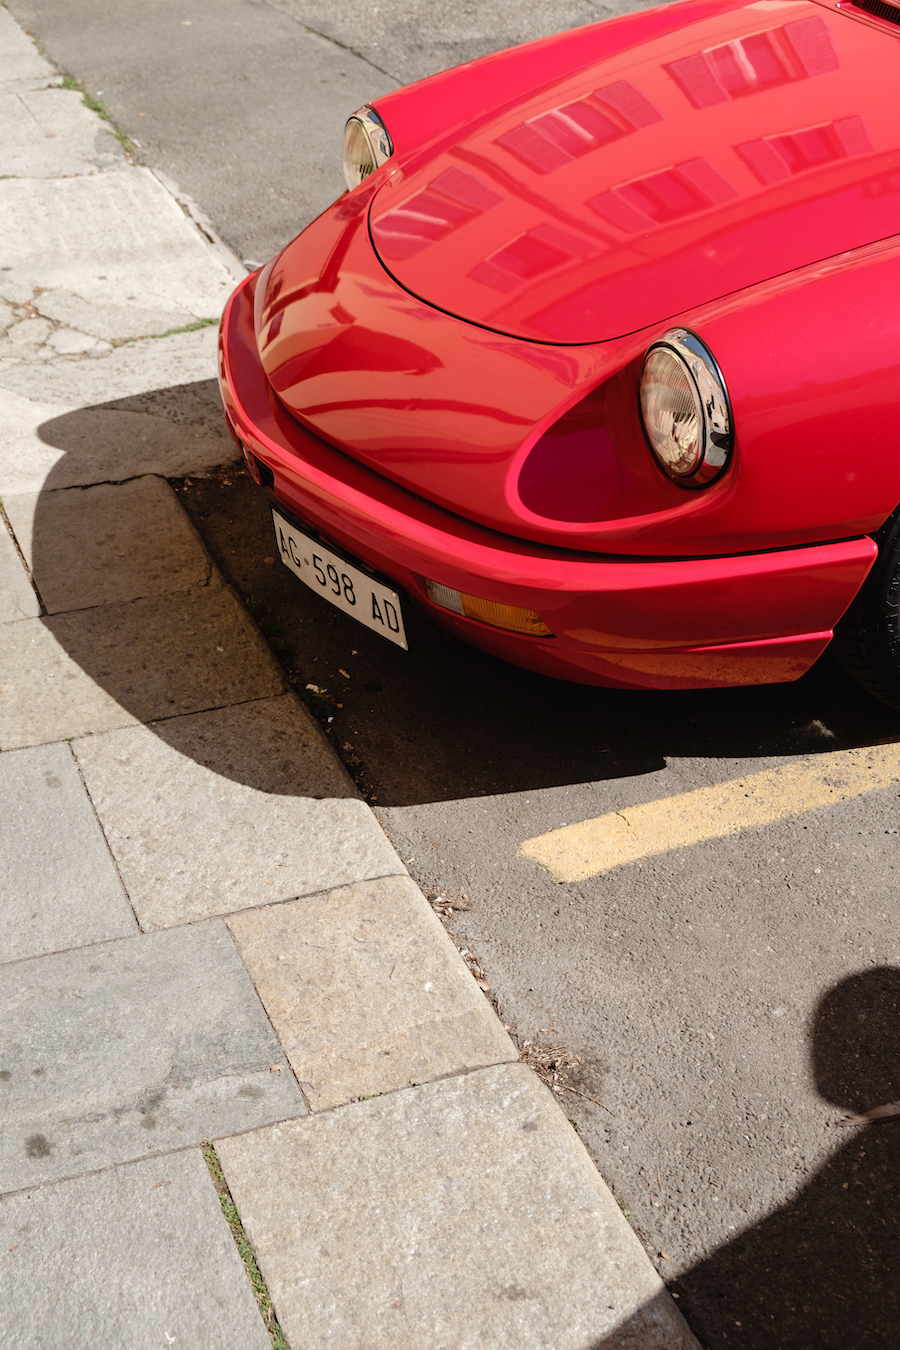 Vintage Alpha Romeo in Modena, Italy - Travel Photography by Ben Holbrook from DriftwoodJournals.com-4813